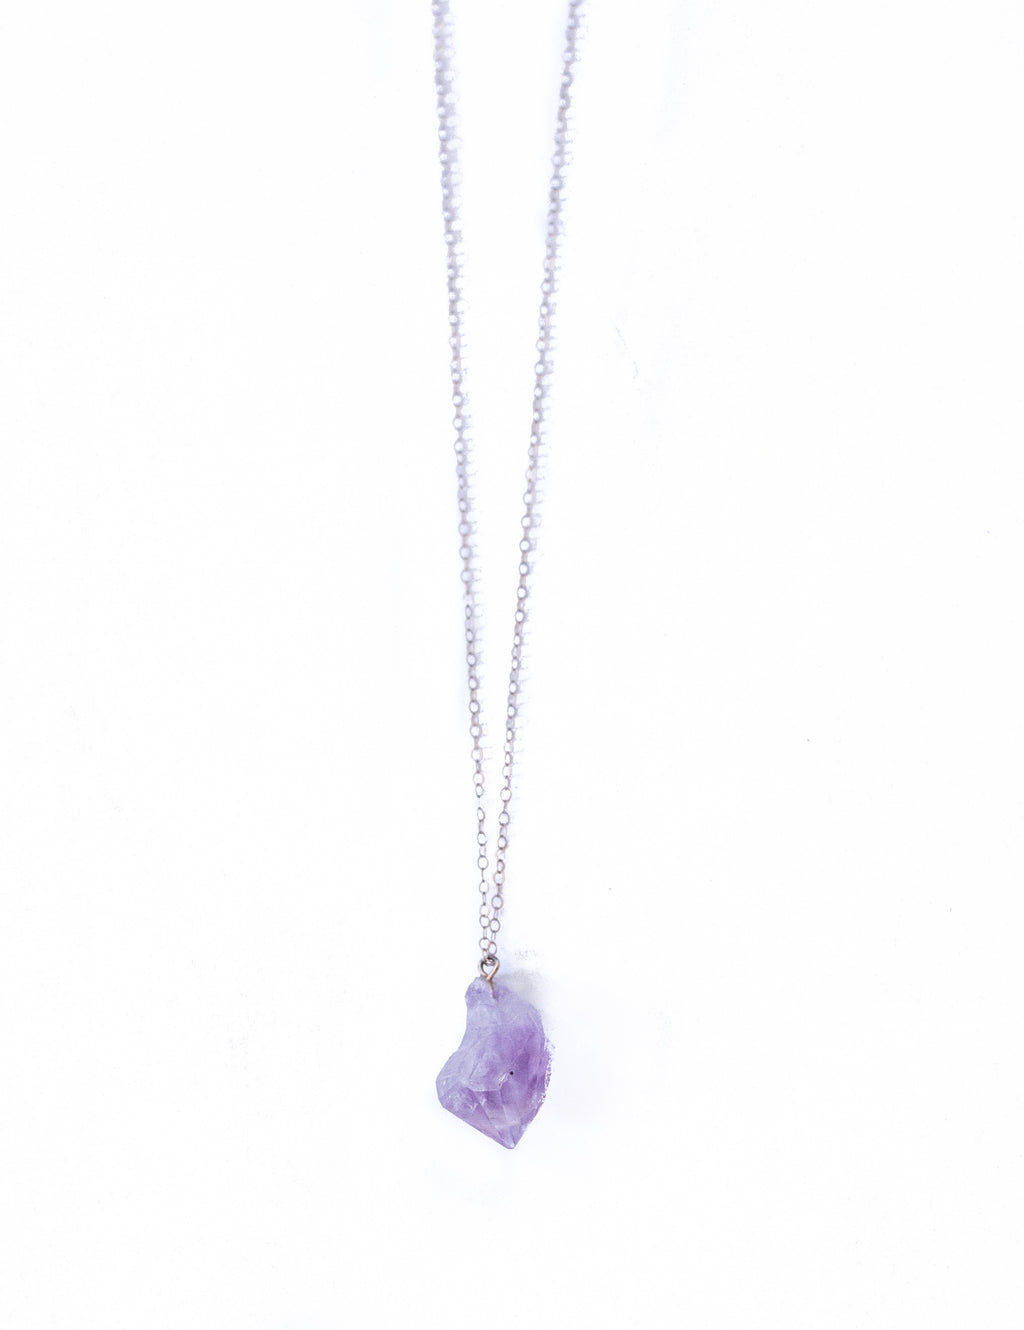 Amethyst Quartz Necklace February Birthstone Necklace